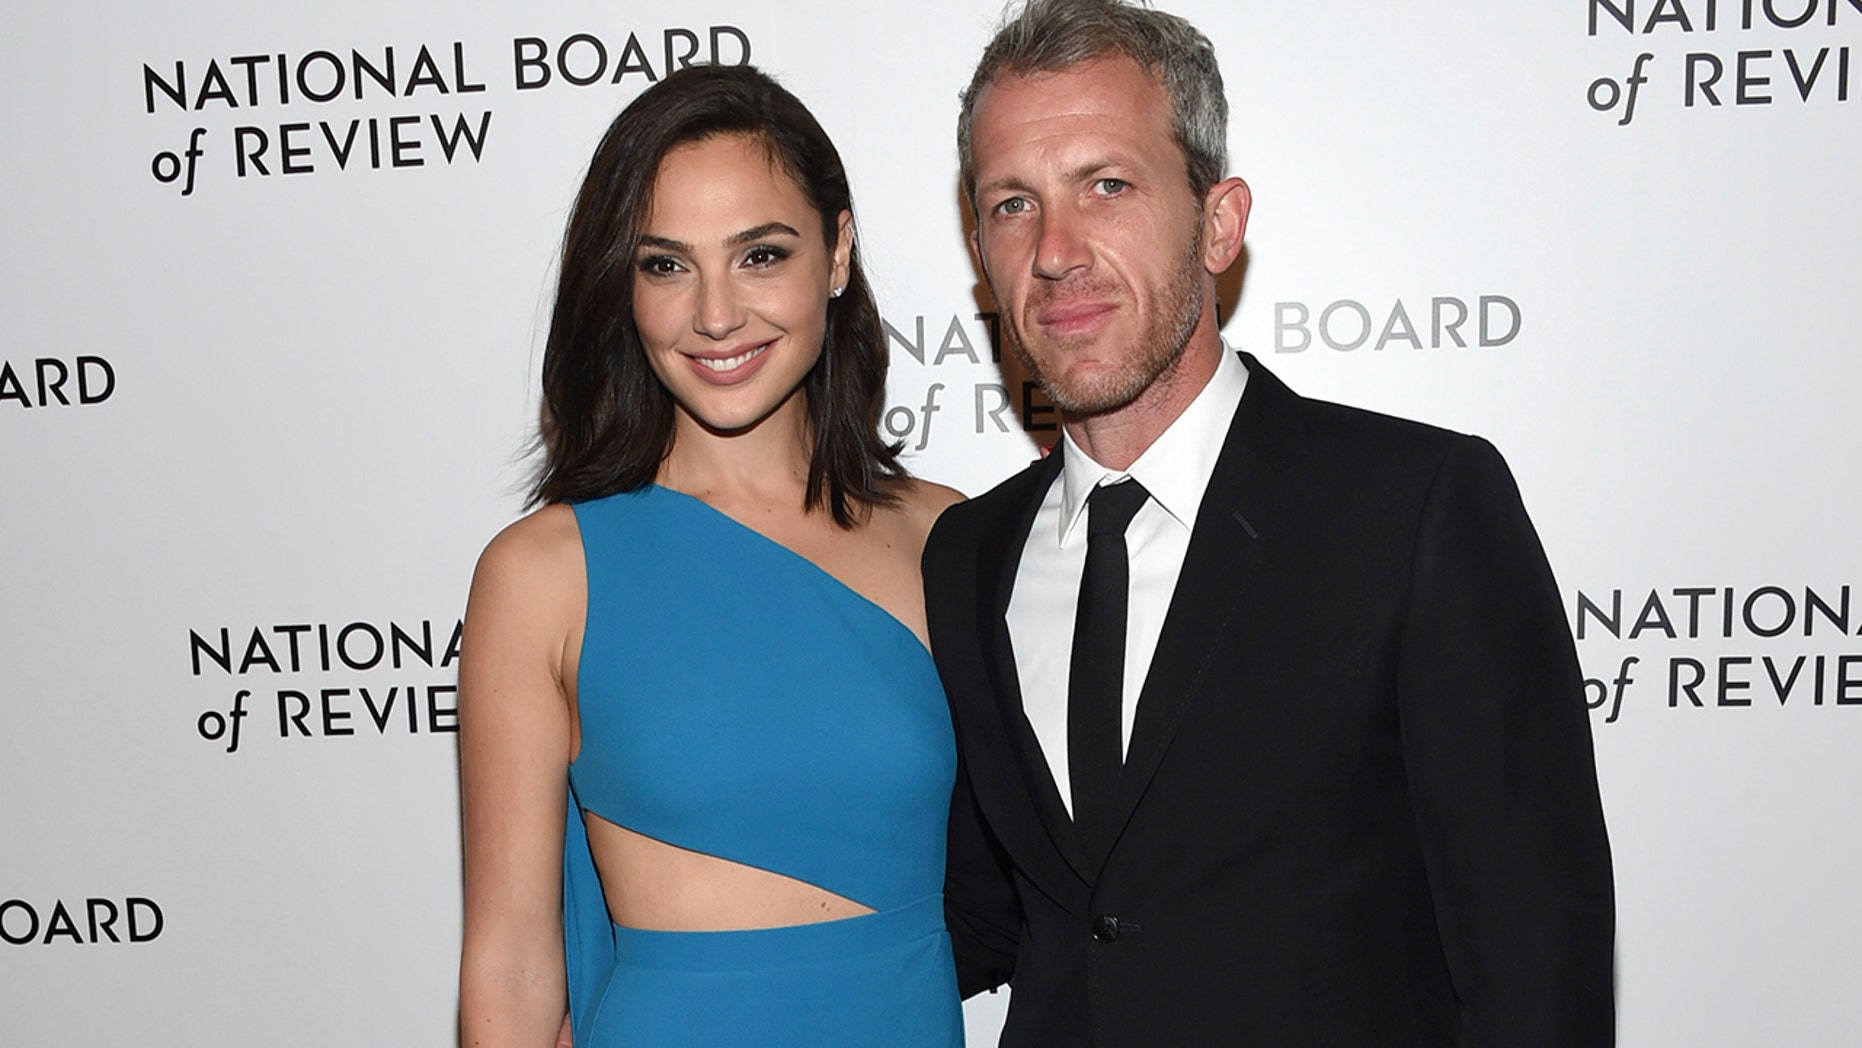 Israeli actress Gal Gadot showed up to the National Board of Review awards wearing a dress by a Lebanese designer, which sparked anger from Lebanese people.